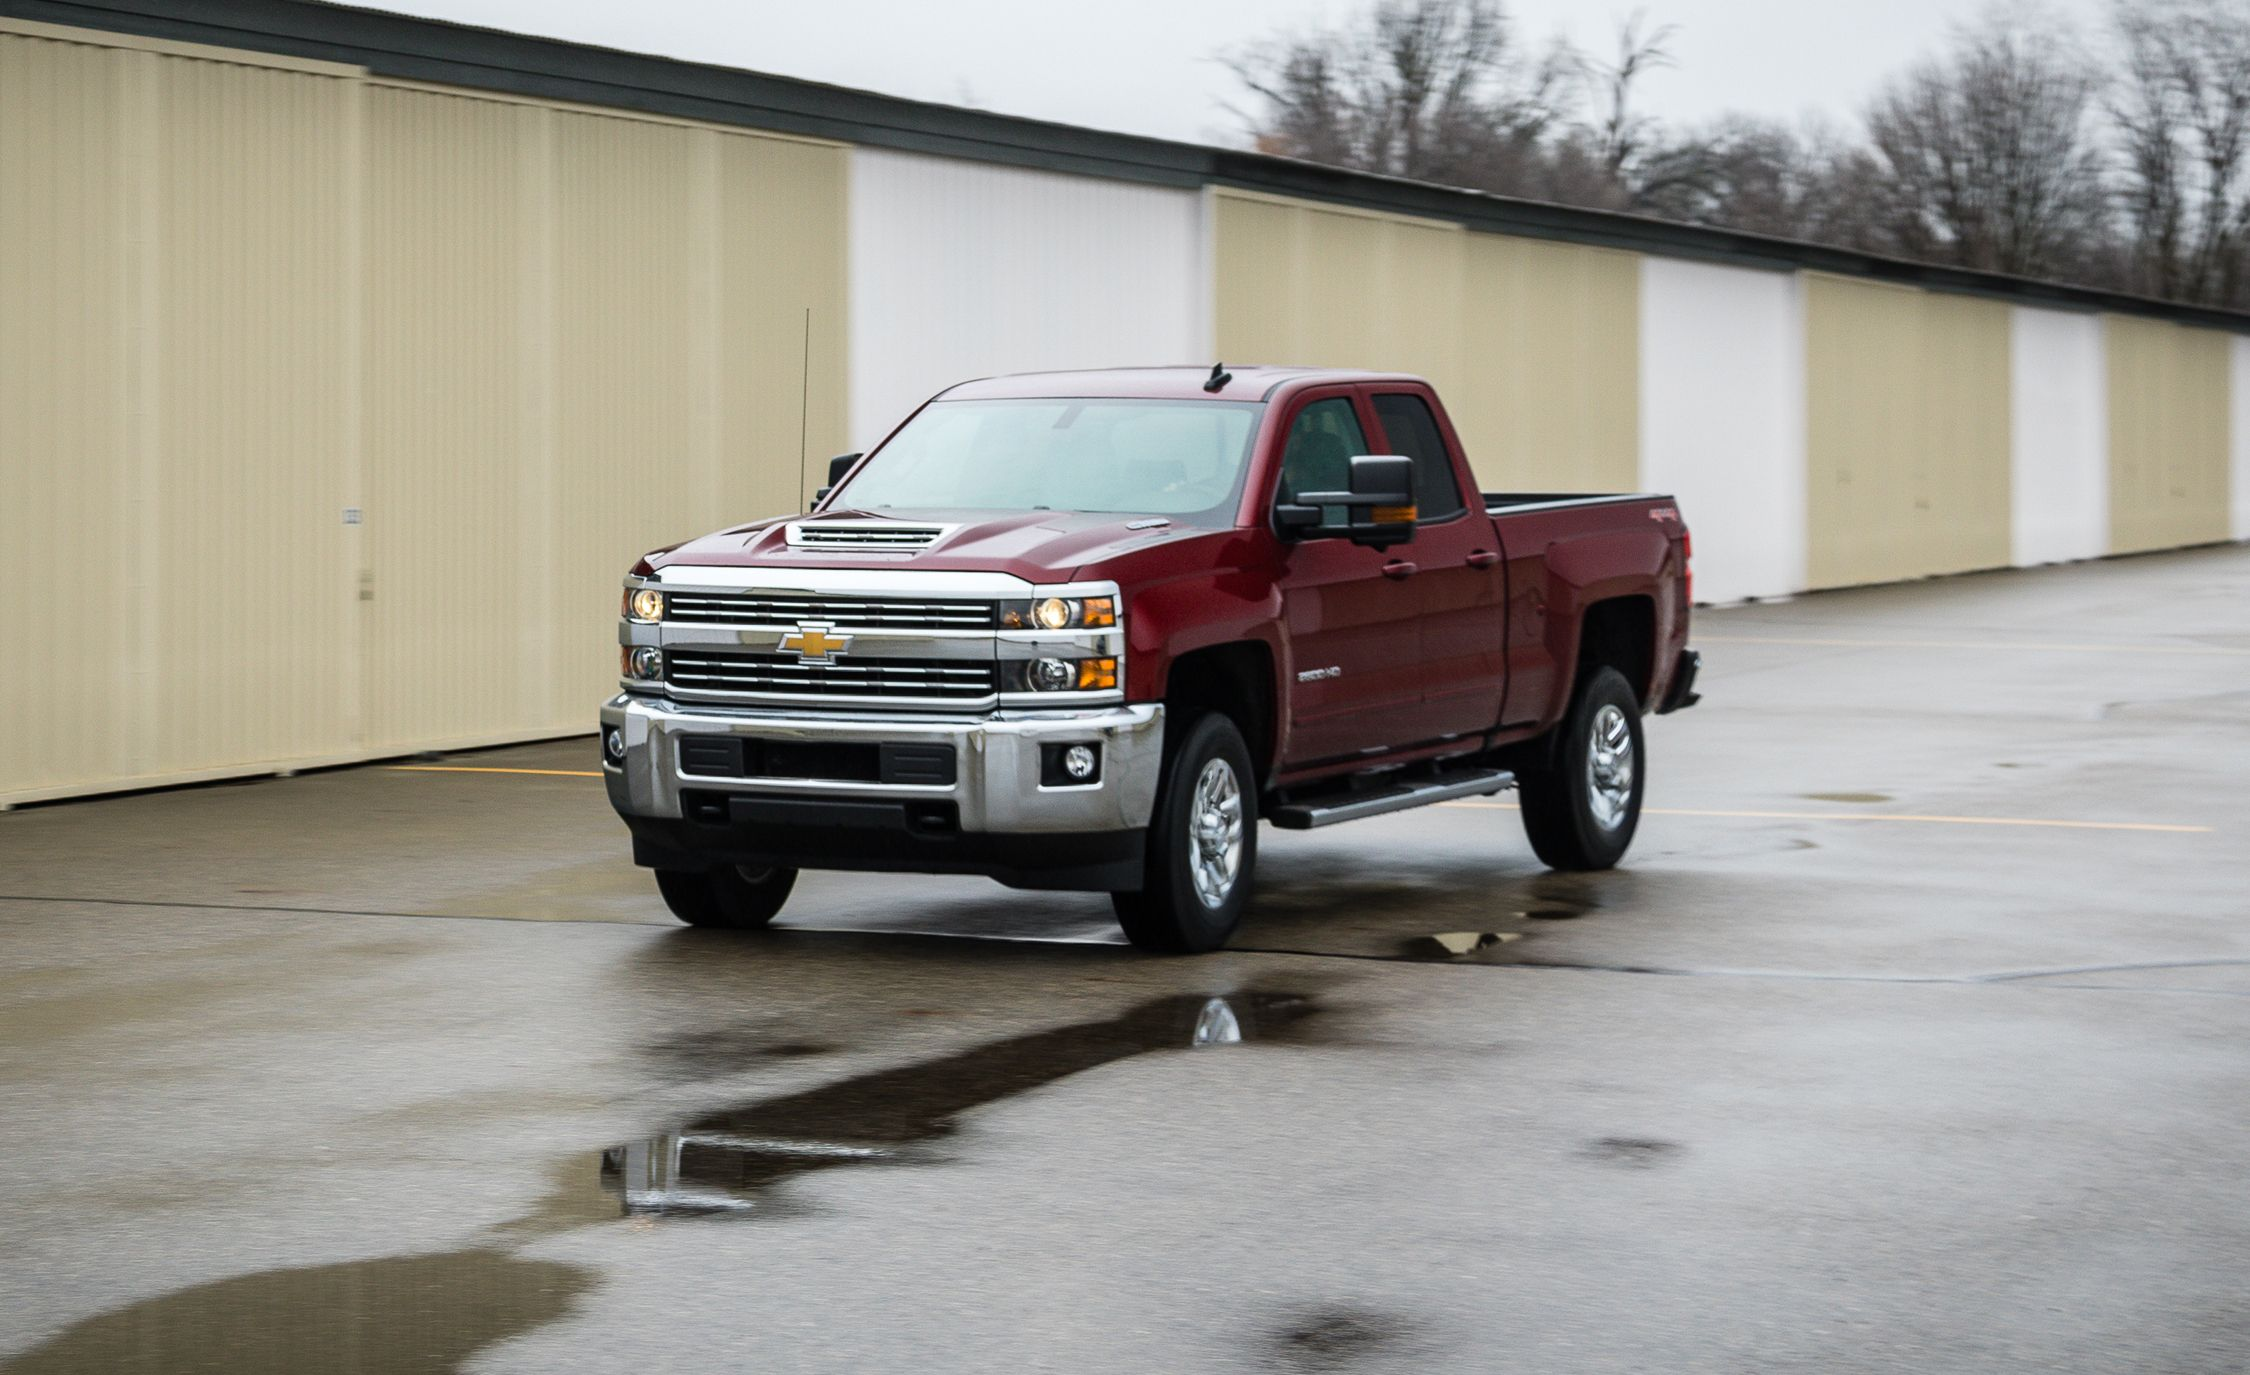 2017 Chevrolet Silverado 2500hd 4x4 Sel Tested Review Car And Driver